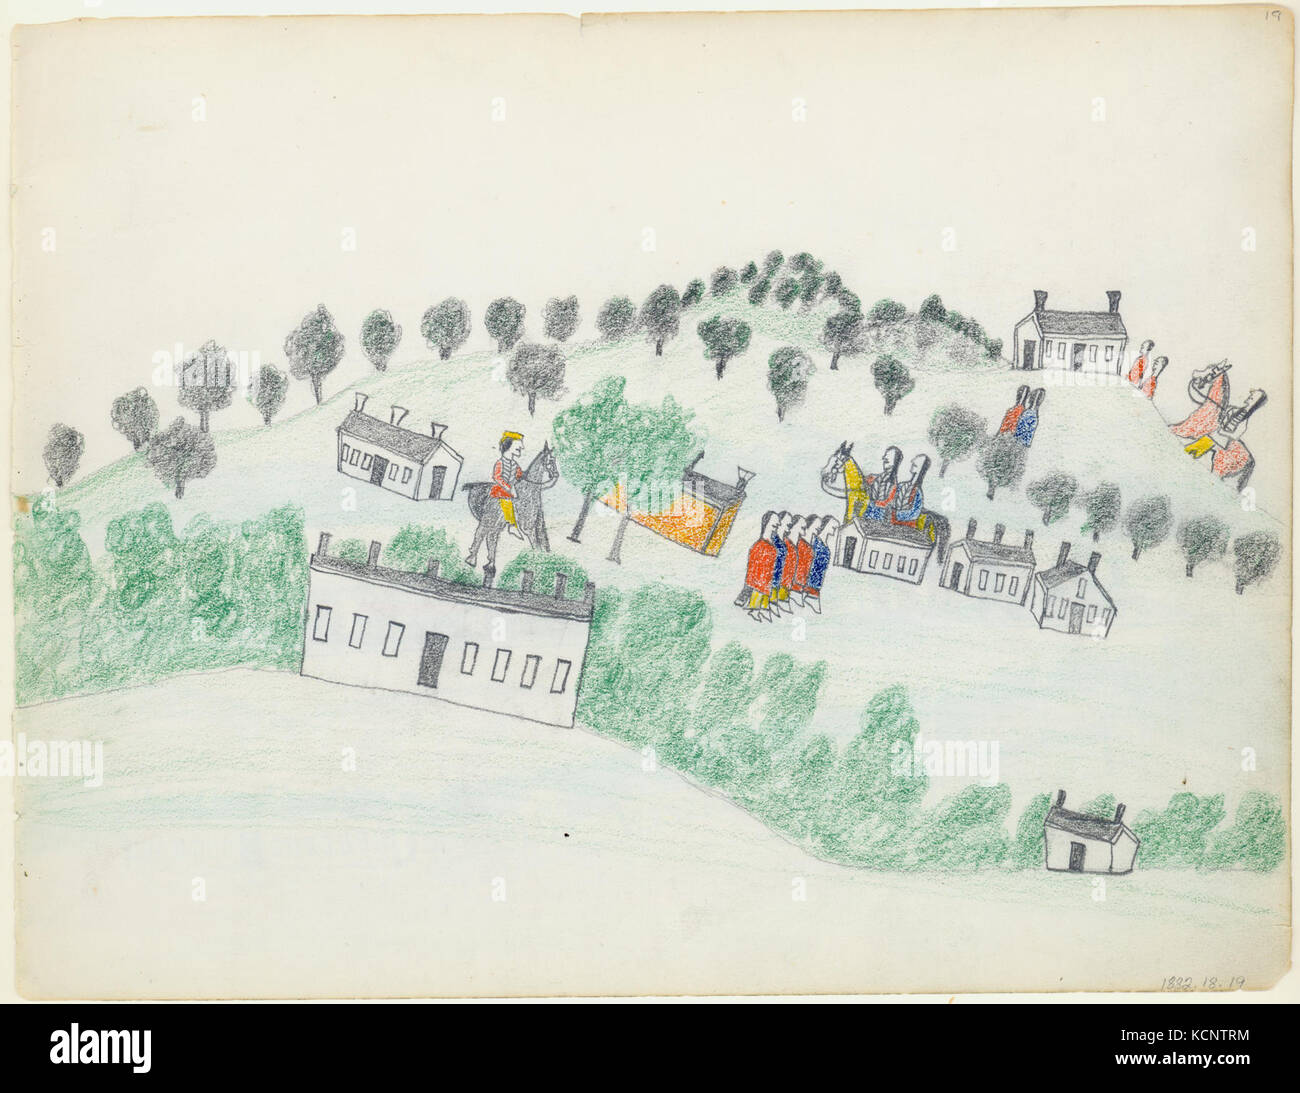 Drawing Of Fort Sill Oklahoma By Wo Haw Stock Photo 162749656 Alamy